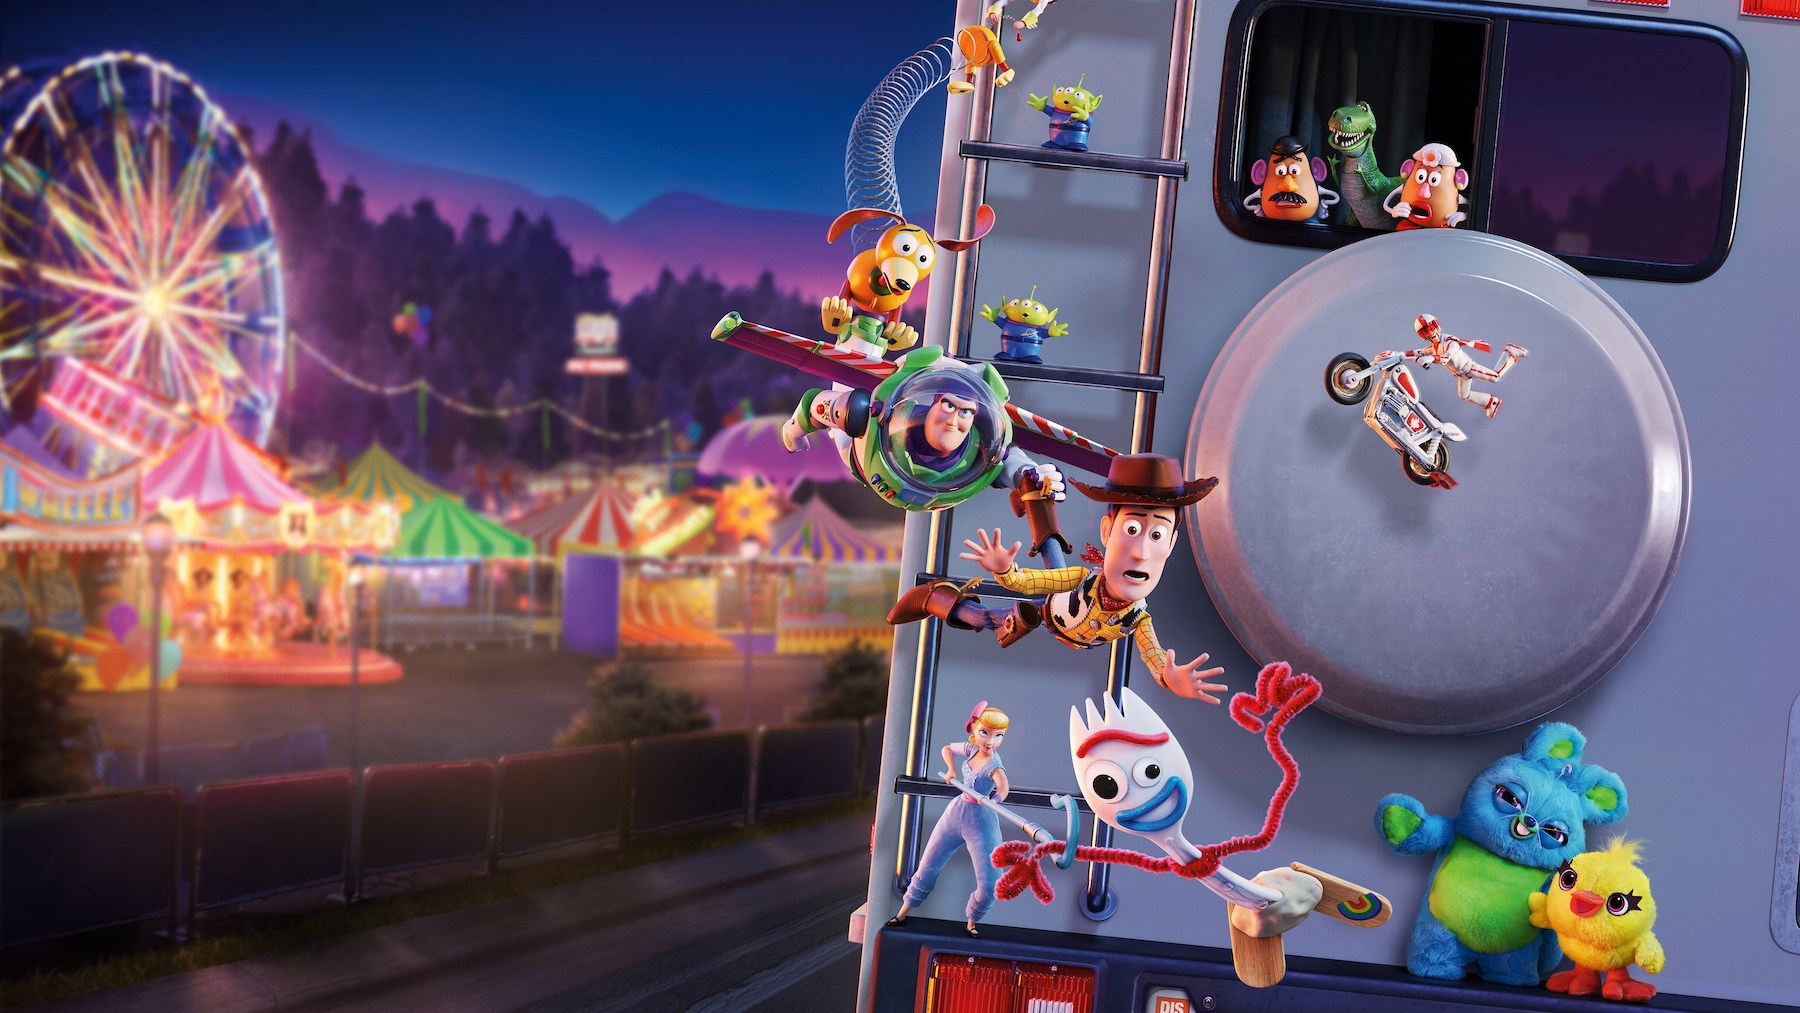 toy story 4 review indonesia